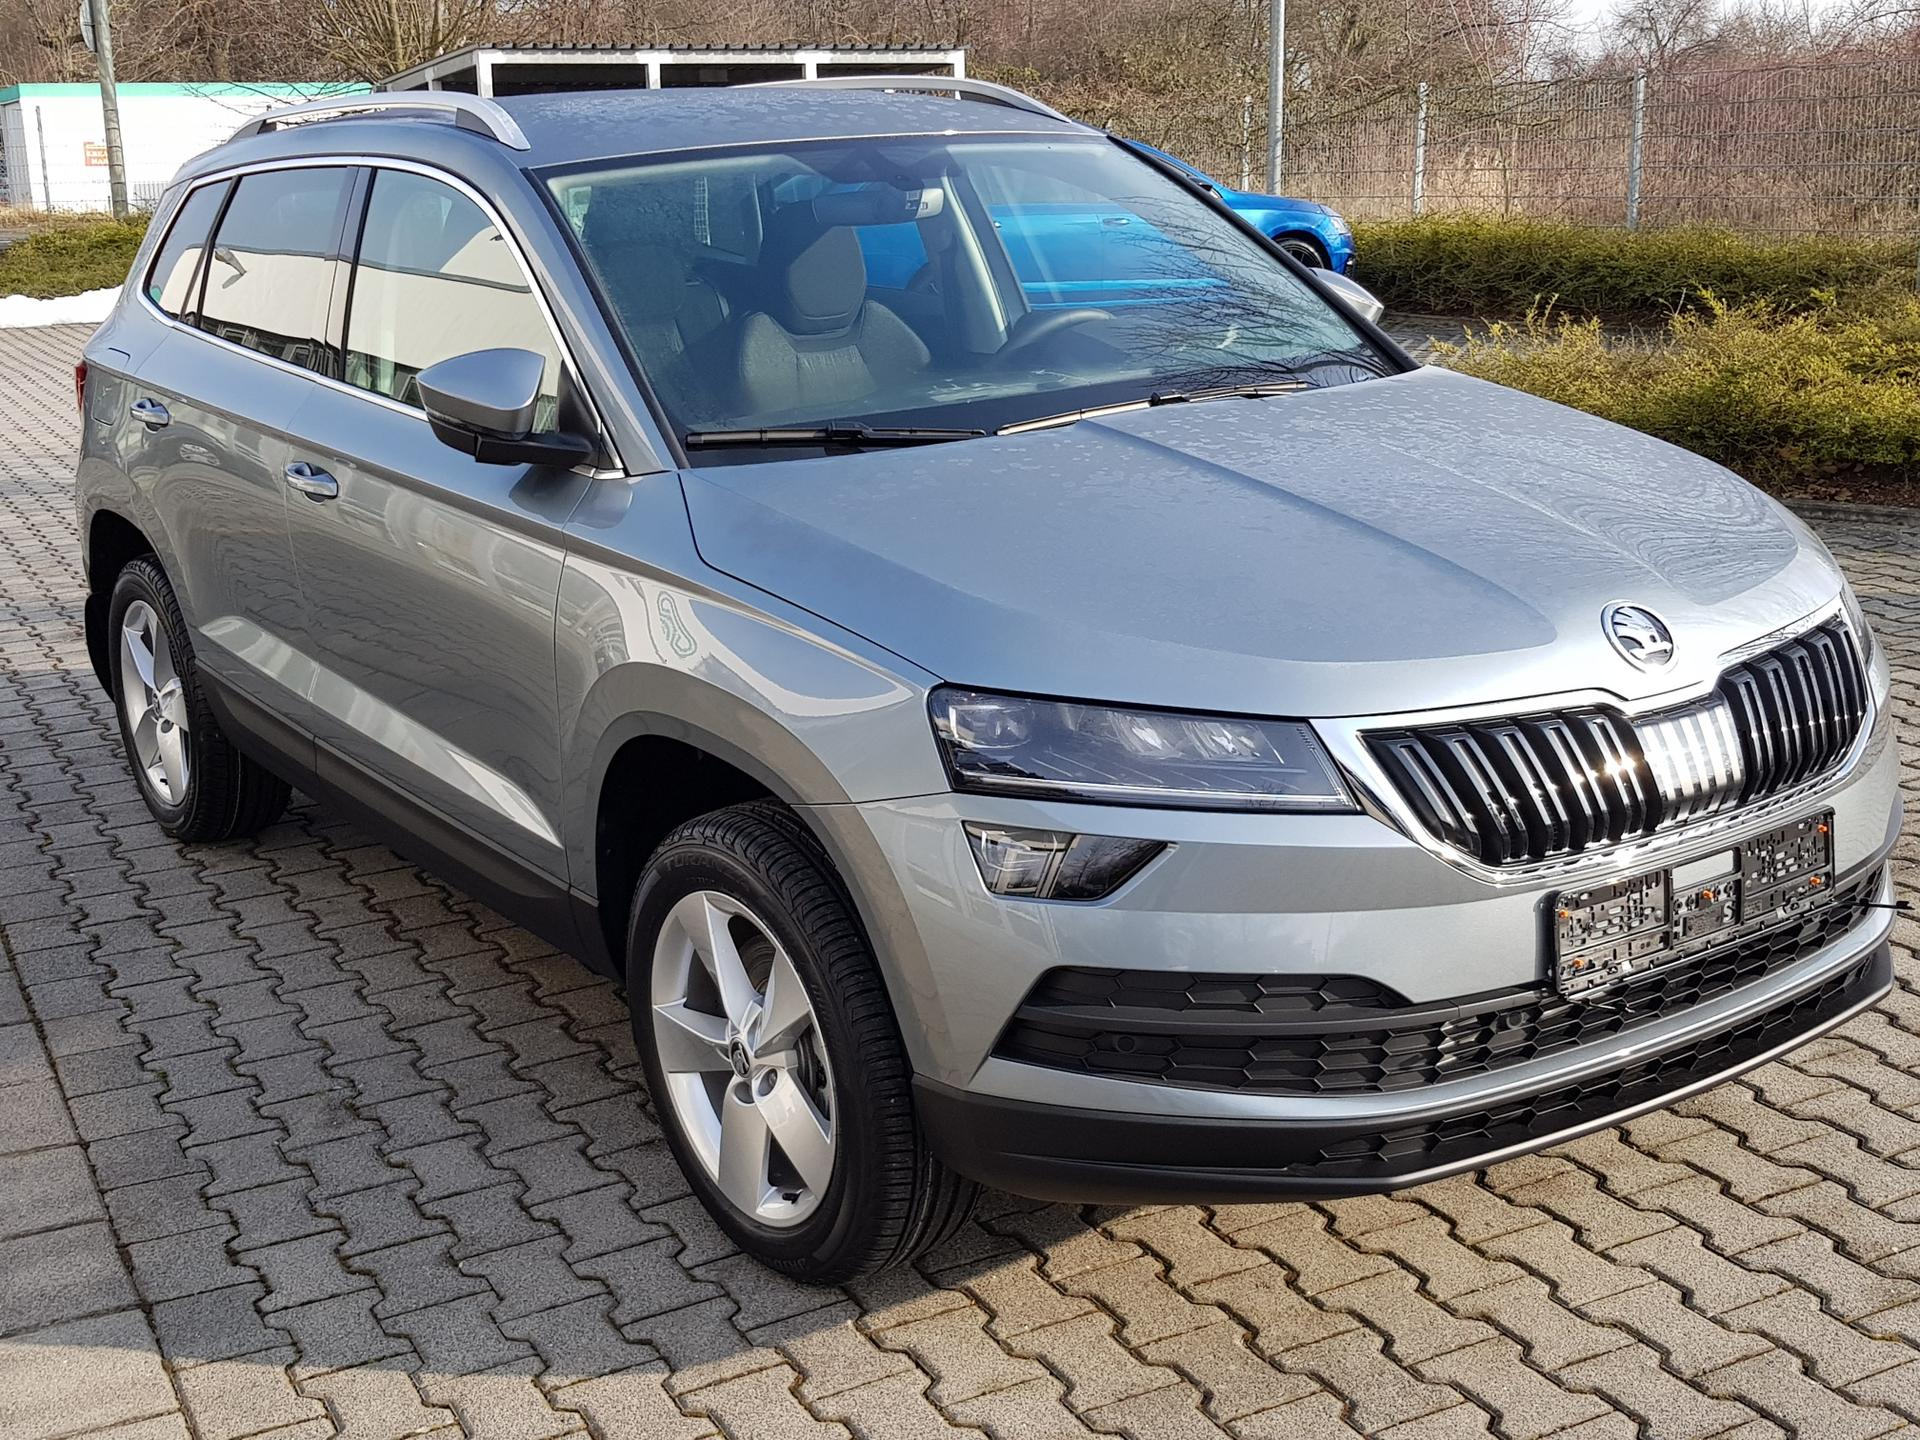 skoda karoq style 1 6tdi scr 85 kw 115 ps dsg 7 gang. Black Bedroom Furniture Sets. Home Design Ideas